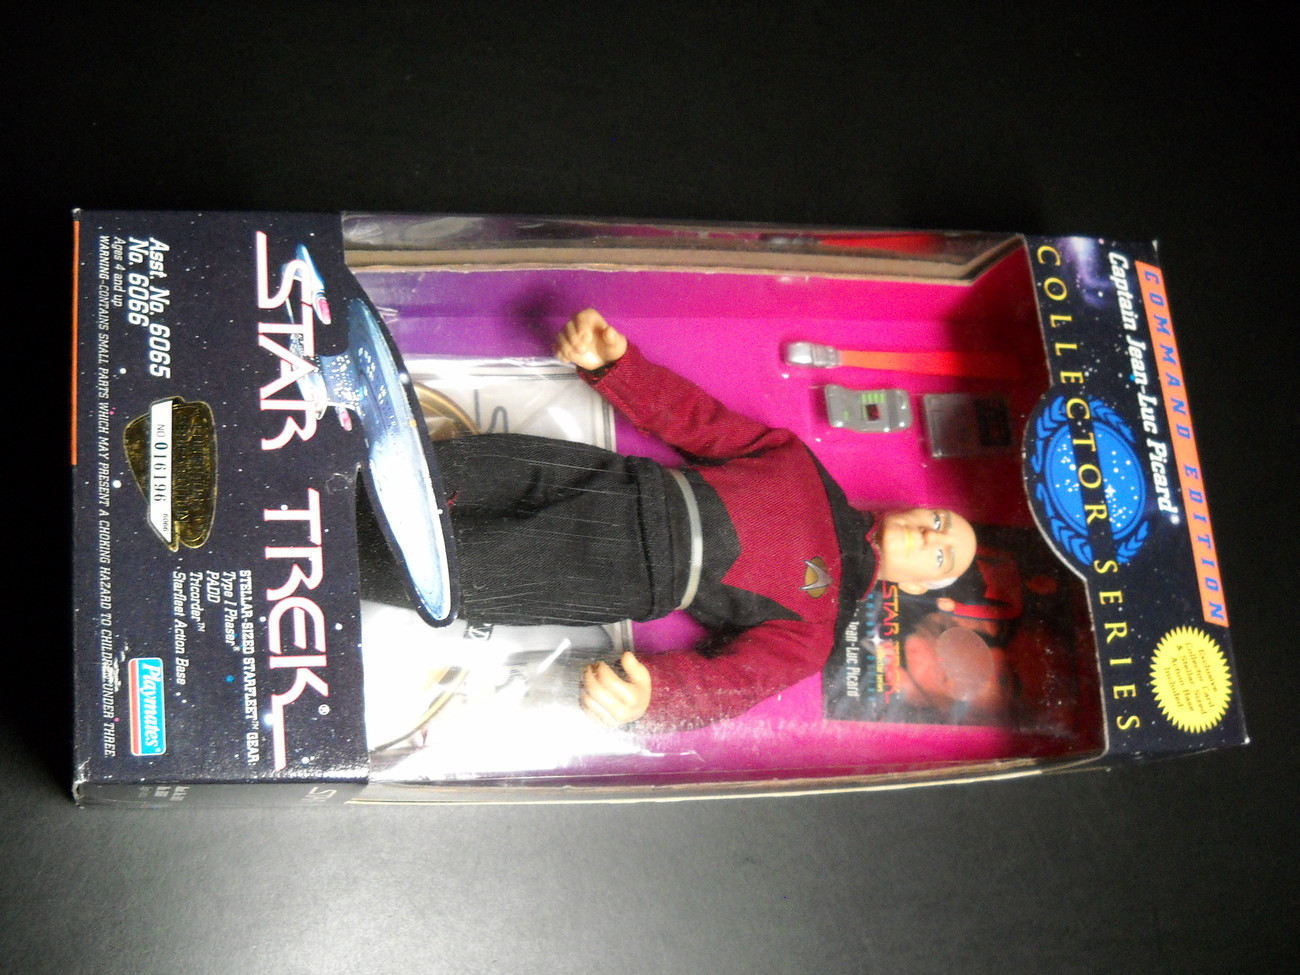 Toy star trek playmates command edition captain jean luc picard 1994 9 inch boxed sealed 02